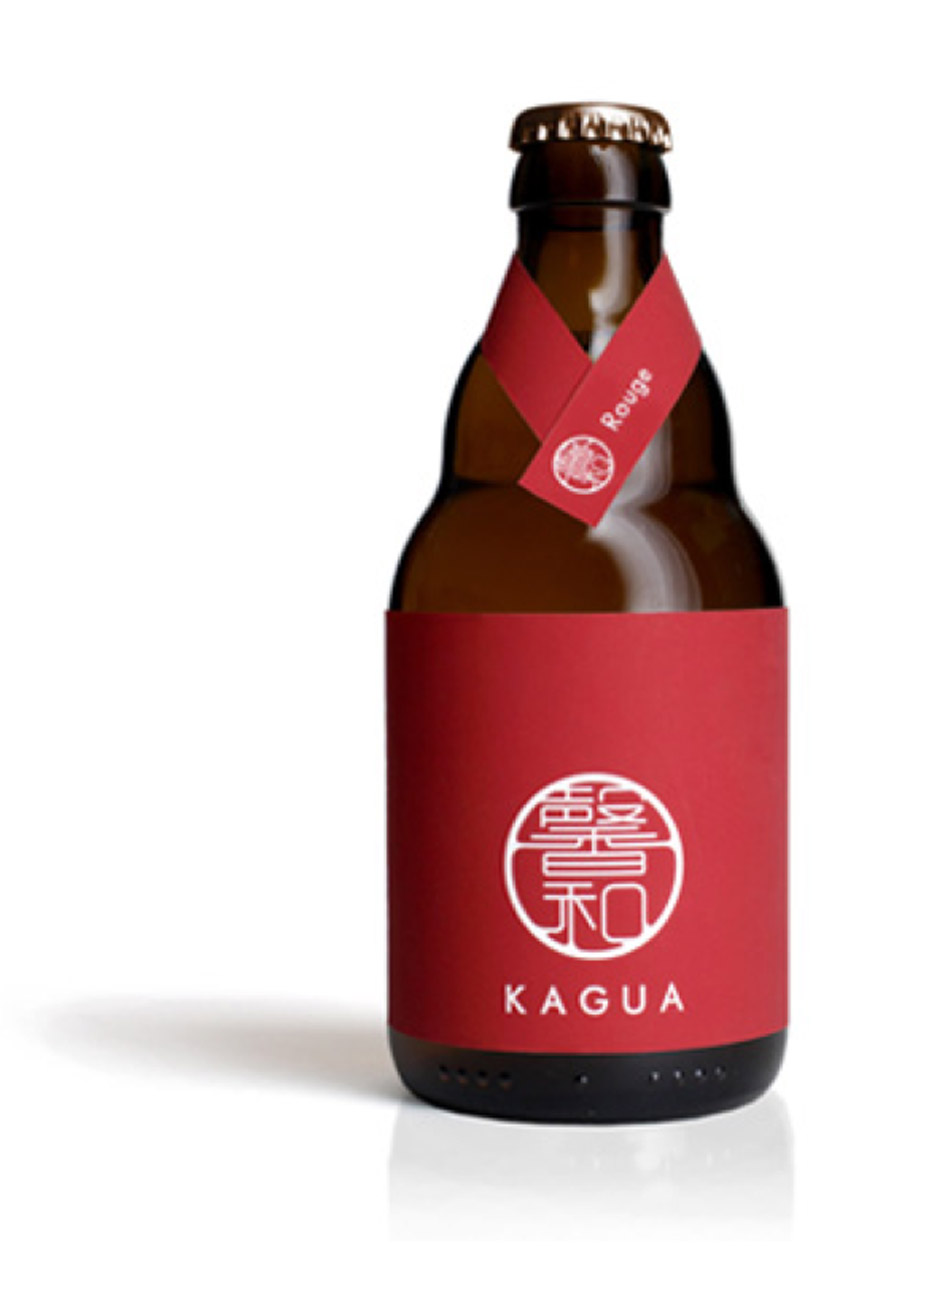 Kagua Rouge bottle